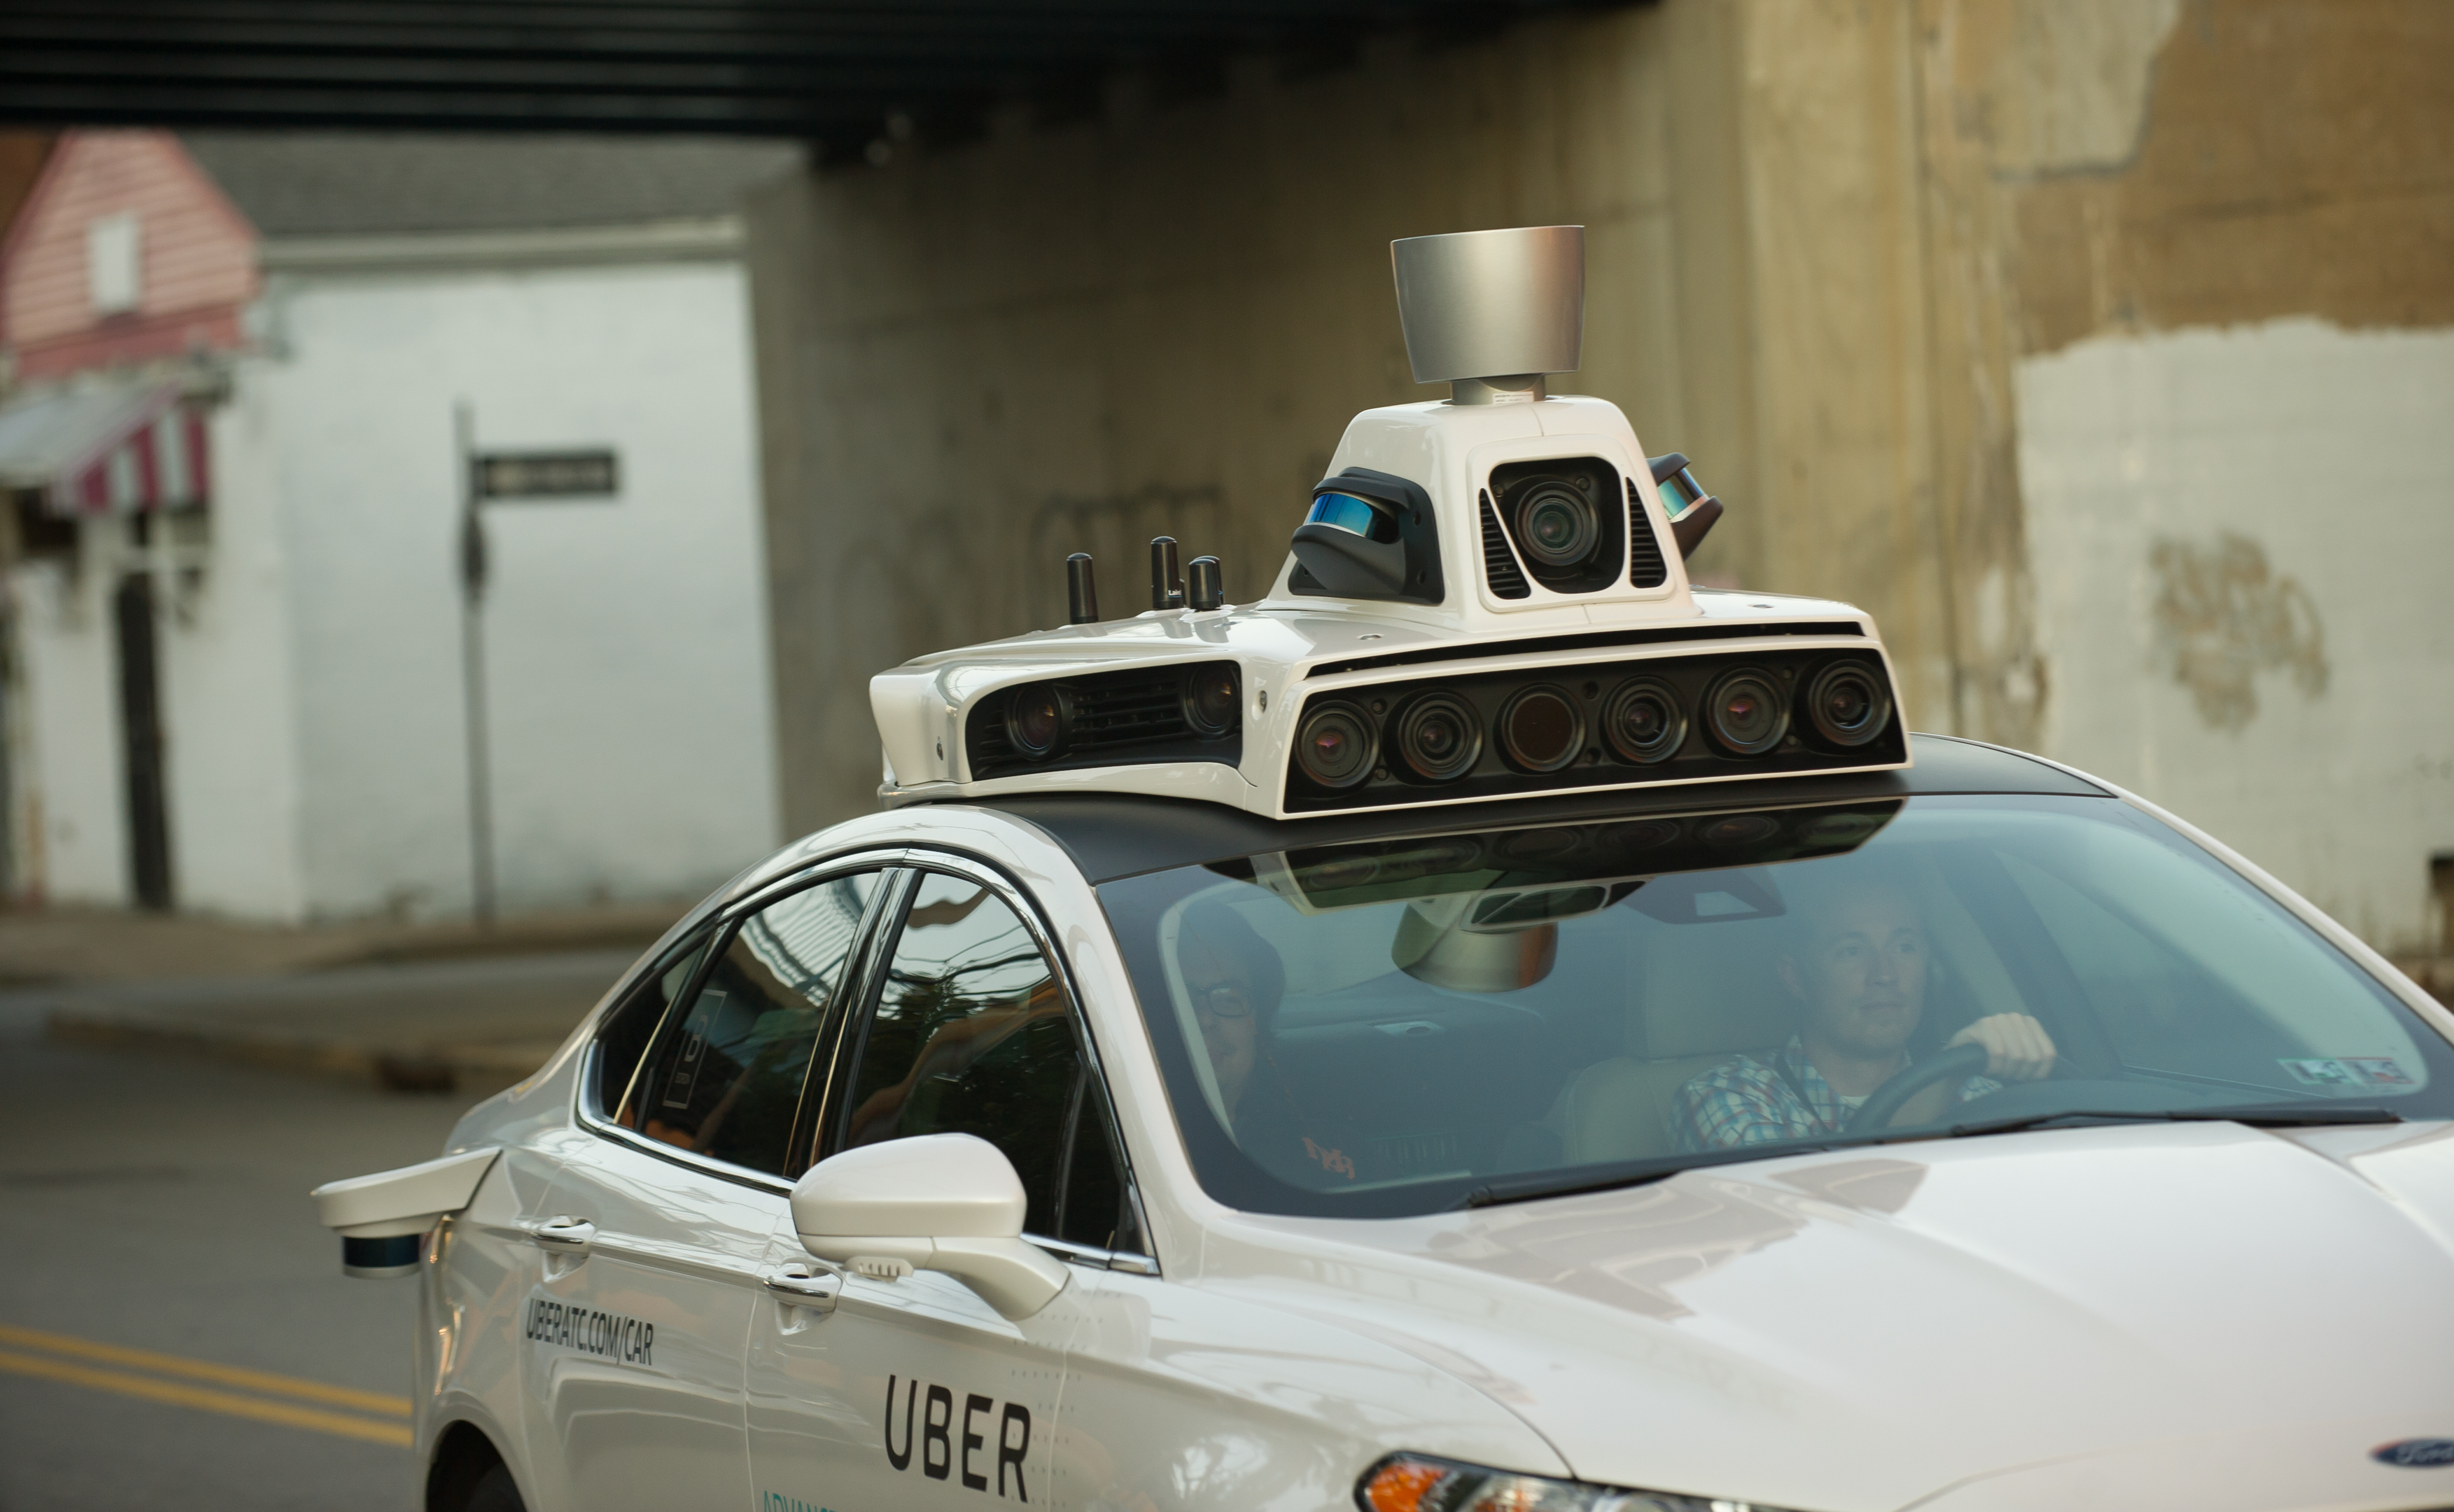 One of Uber's autonomous Ford Fusion cars in Pittsburgh, Pennsylvania. With a driver.